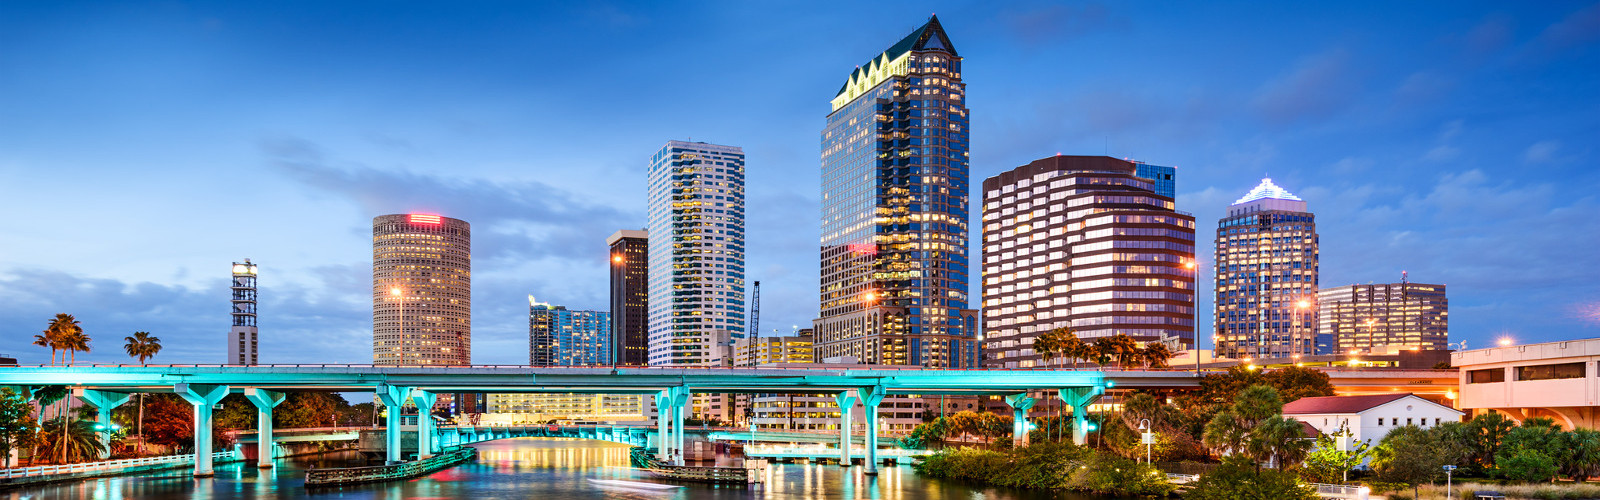 down-town-tampa-tampa-lawyer1